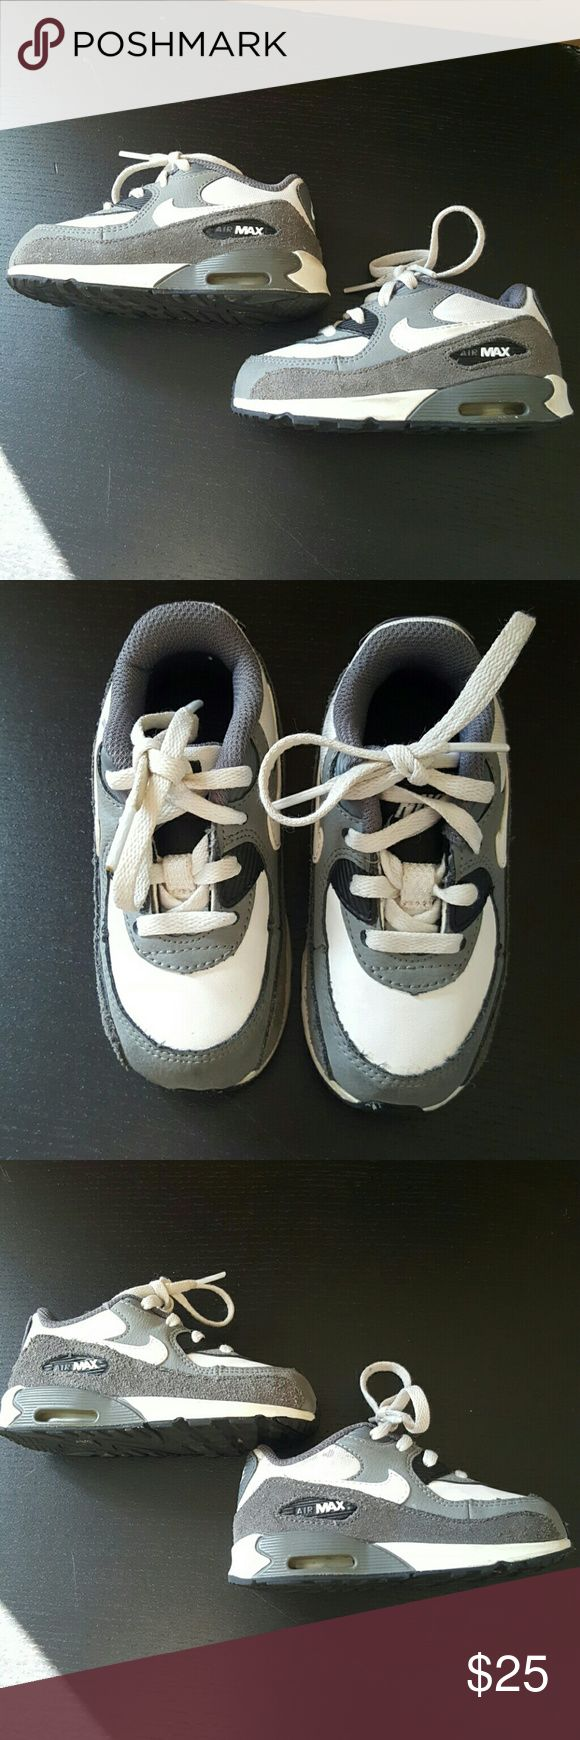 Nike 7c Toddler White Gray Air Max Sneakers Does show some stains.  See close up picture Nike Shoes Sneakers